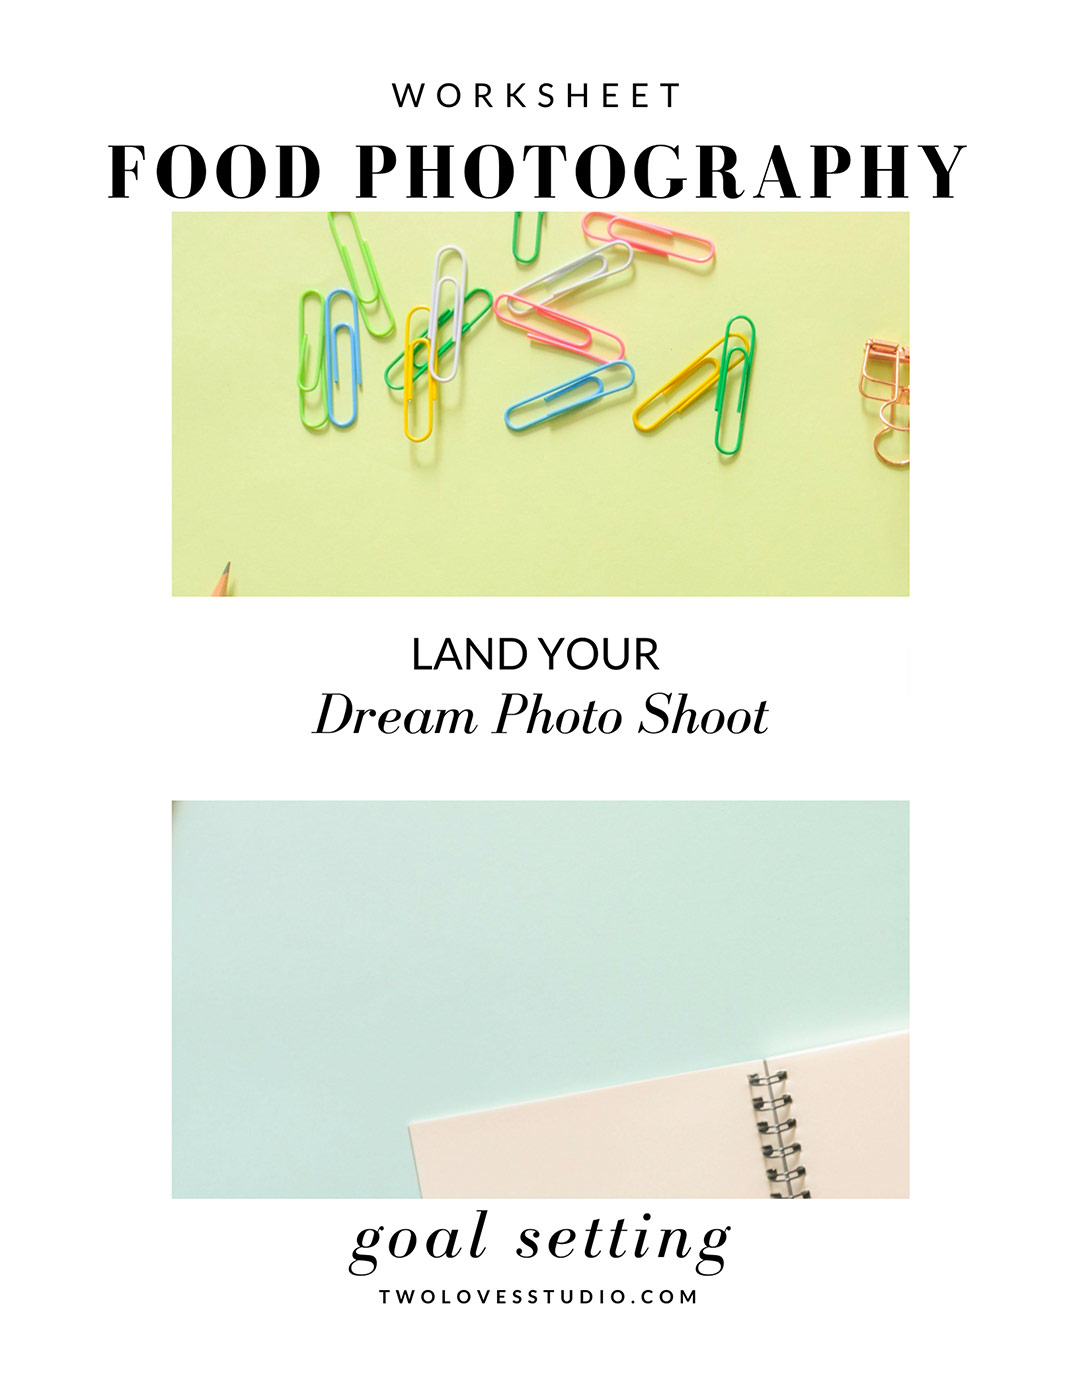 Food Photography Goal Setting Worksheet - Land Your Dream Photoshoot